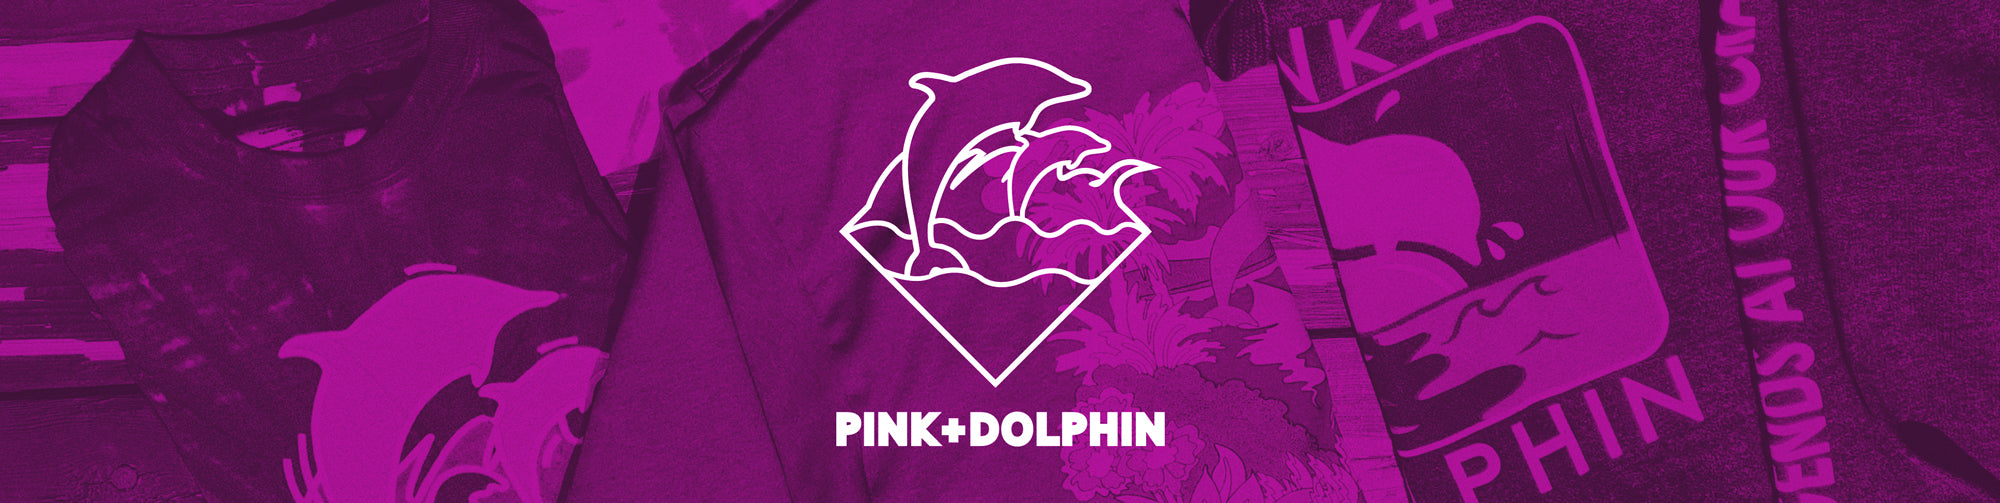 Pink Dolphin - West49